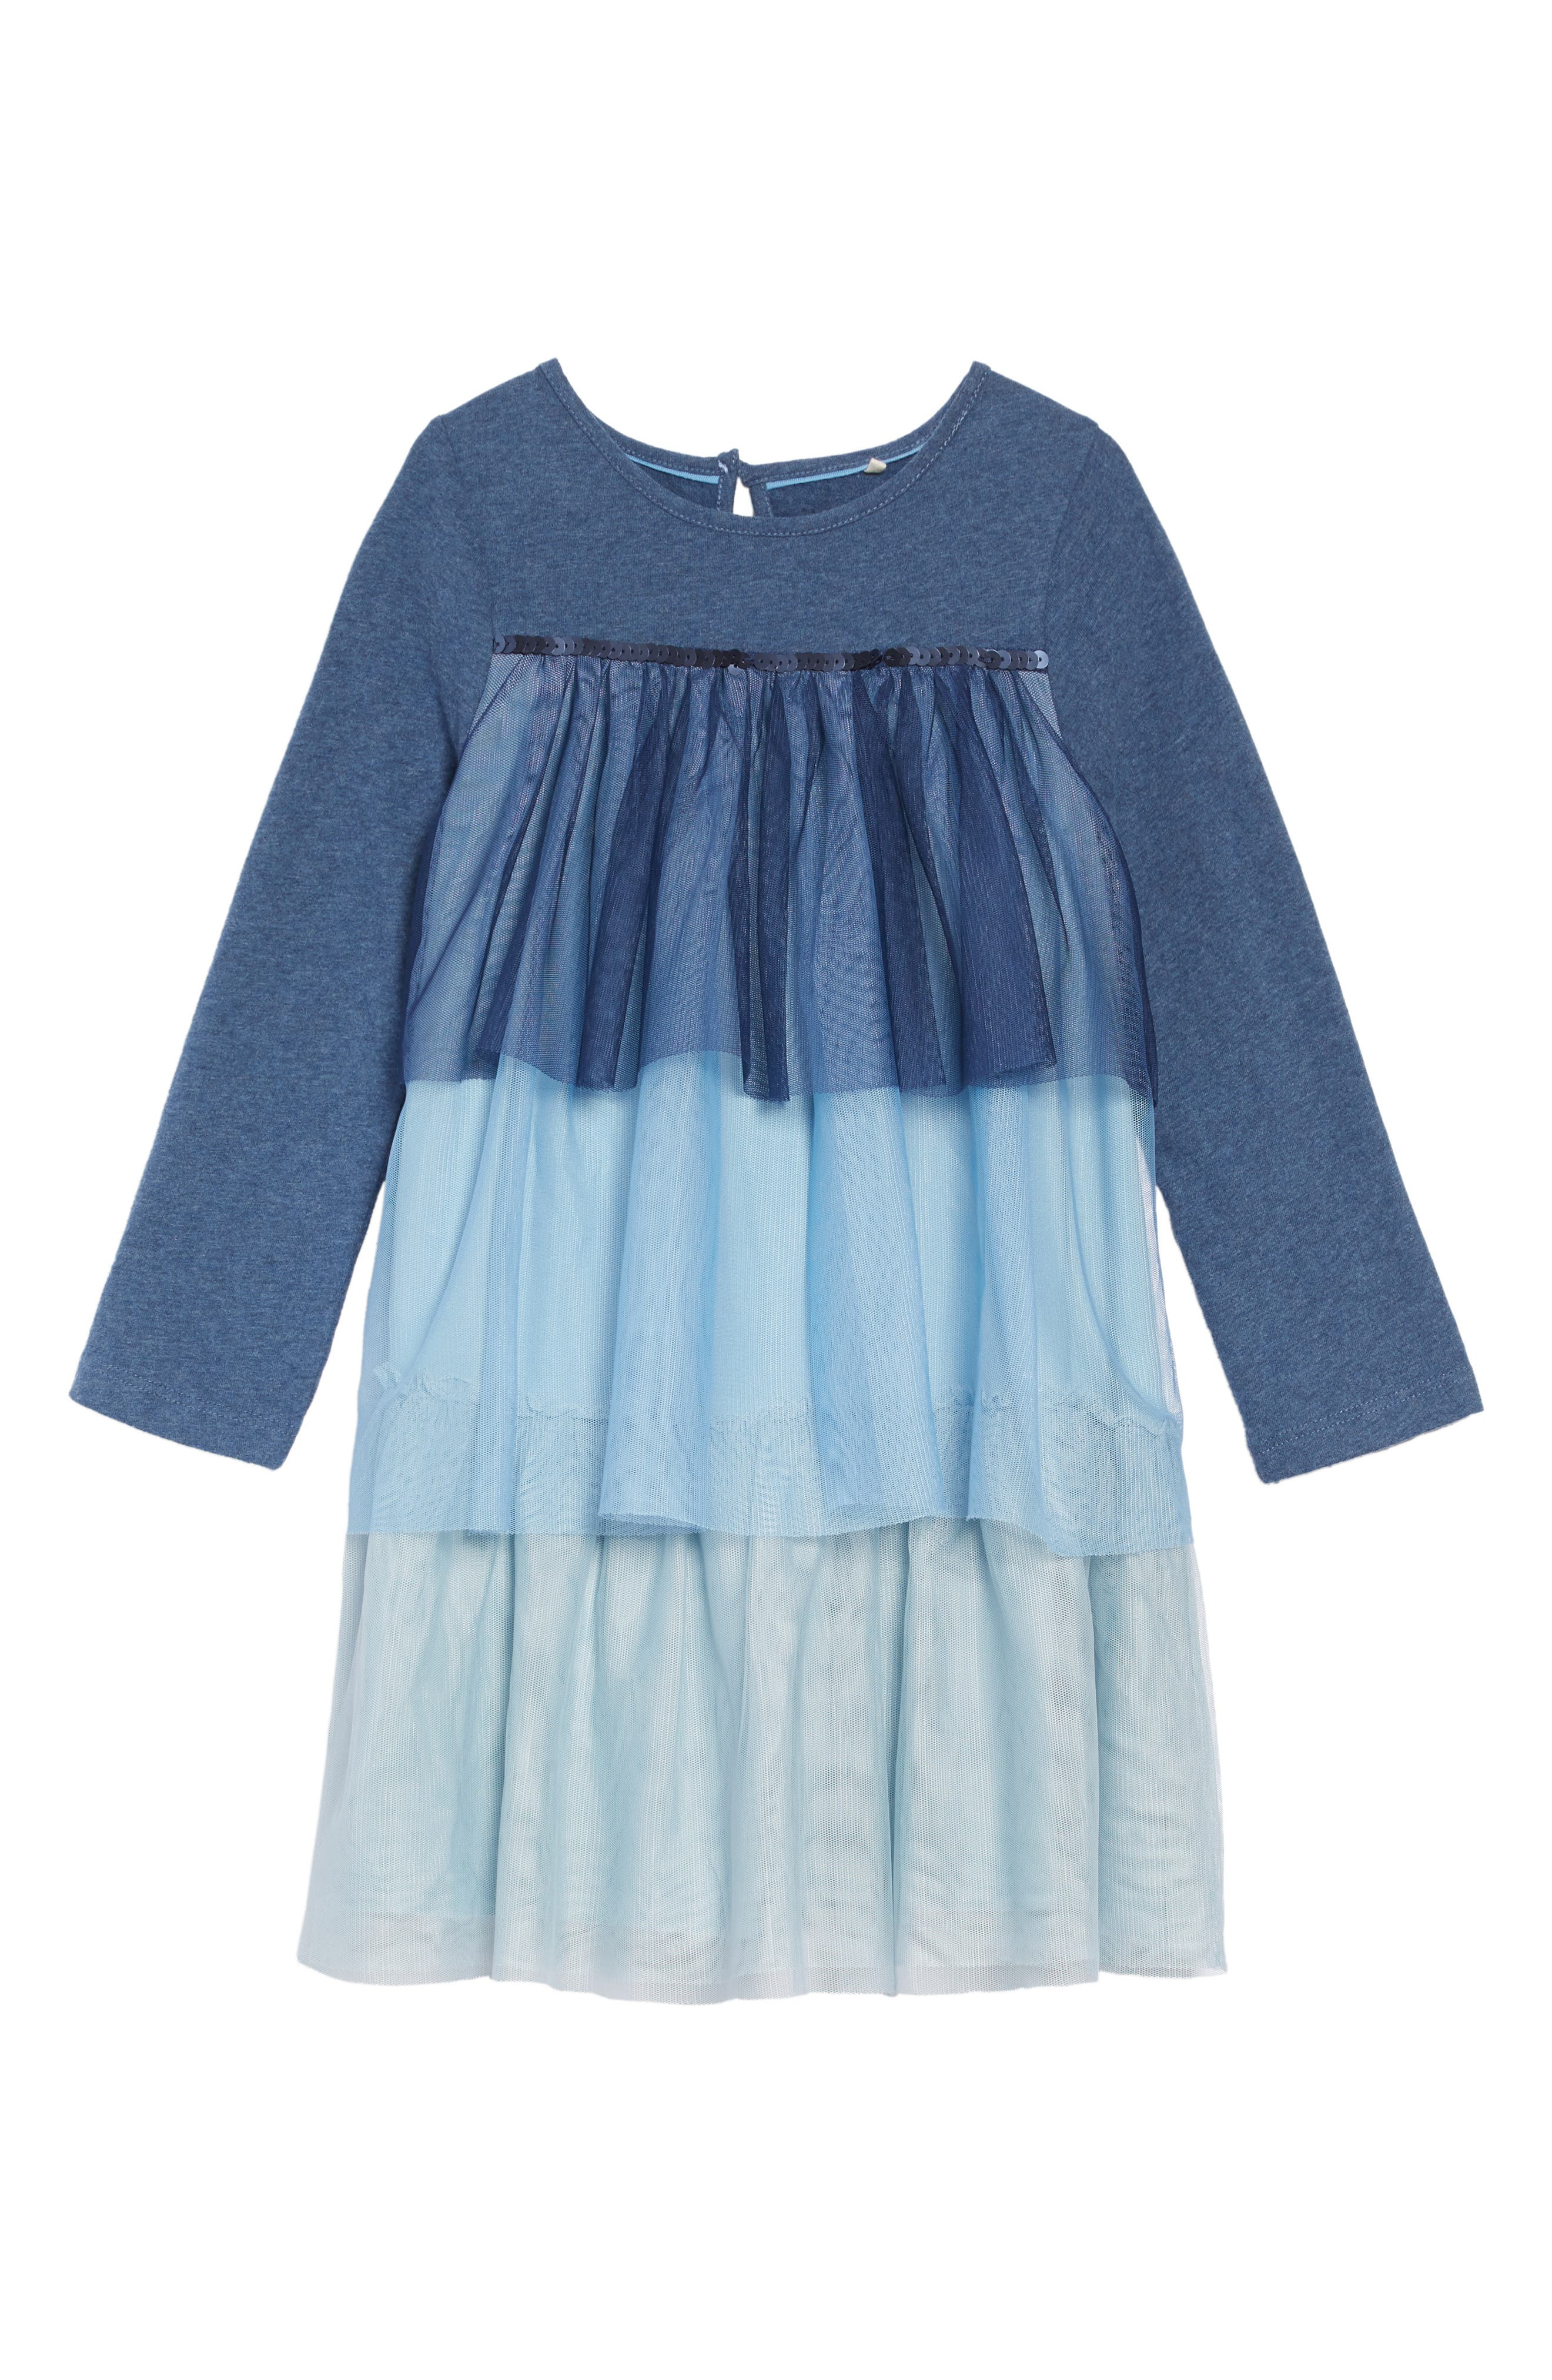 Jersey & Tulle Dress,                             Main thumbnail 1, color,                             SCHOOL NAVY OMBRE